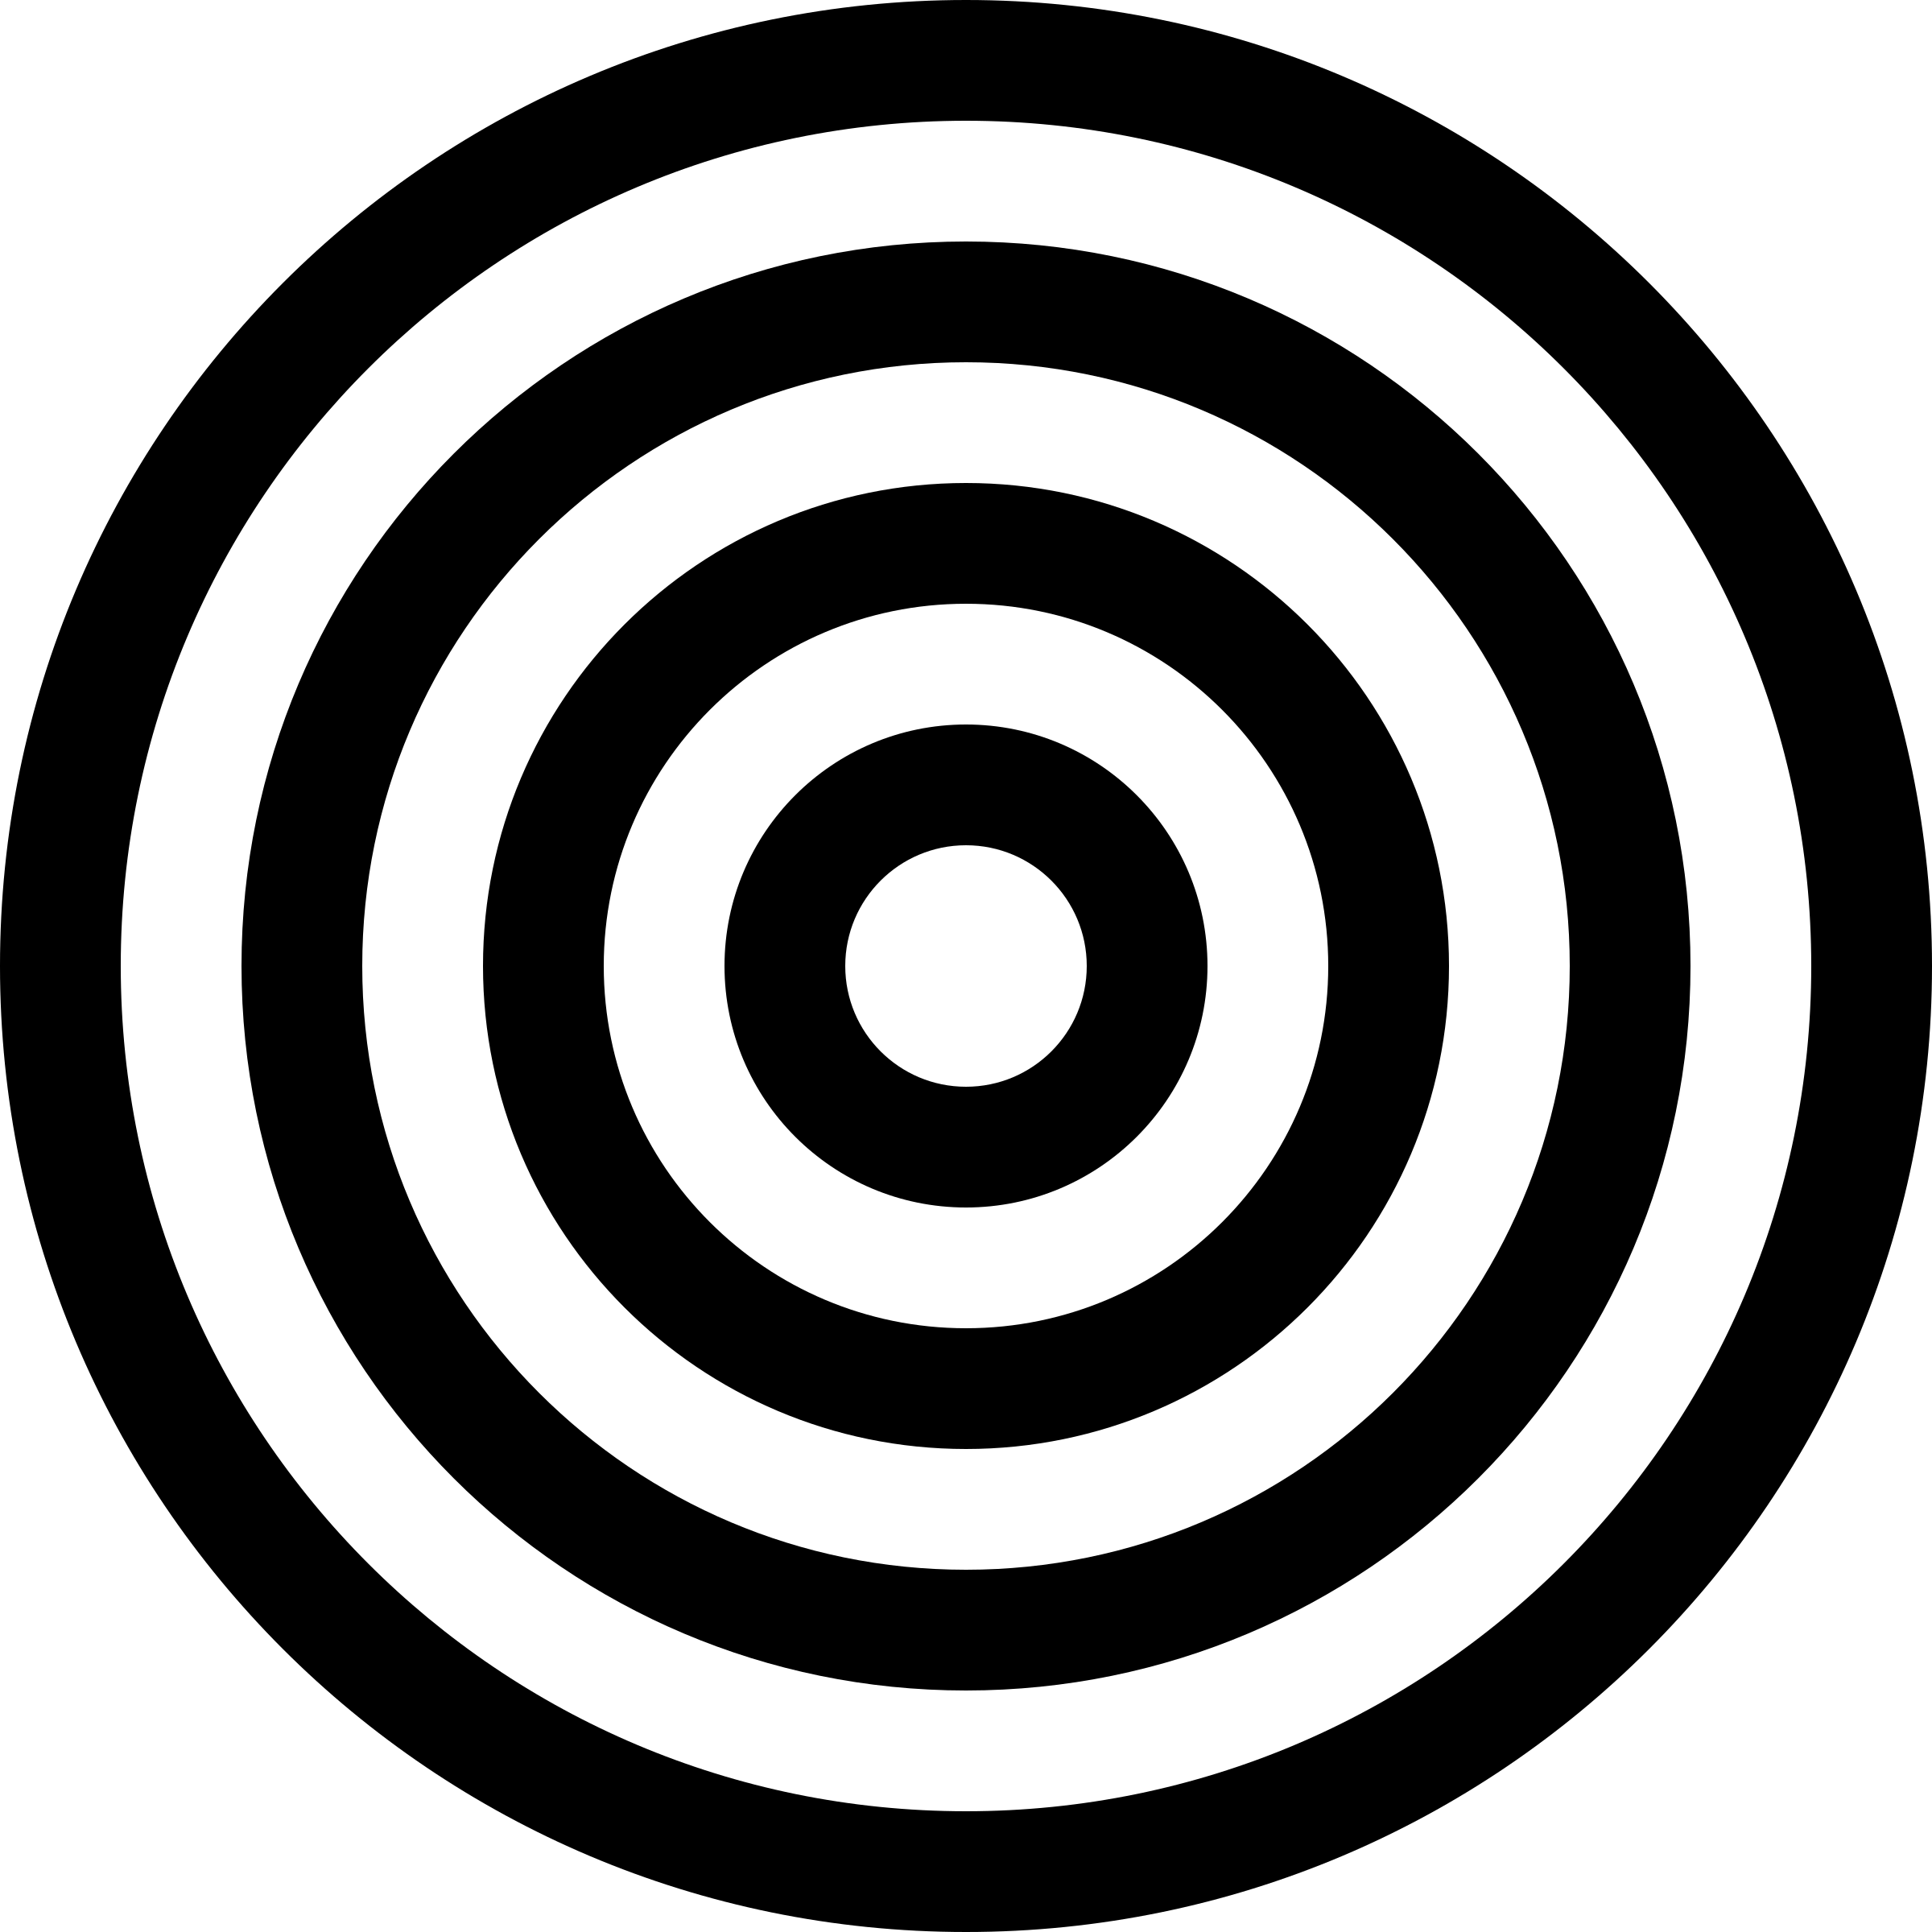 Target Black And White By 10binary Black And White Logos Black And White Black App